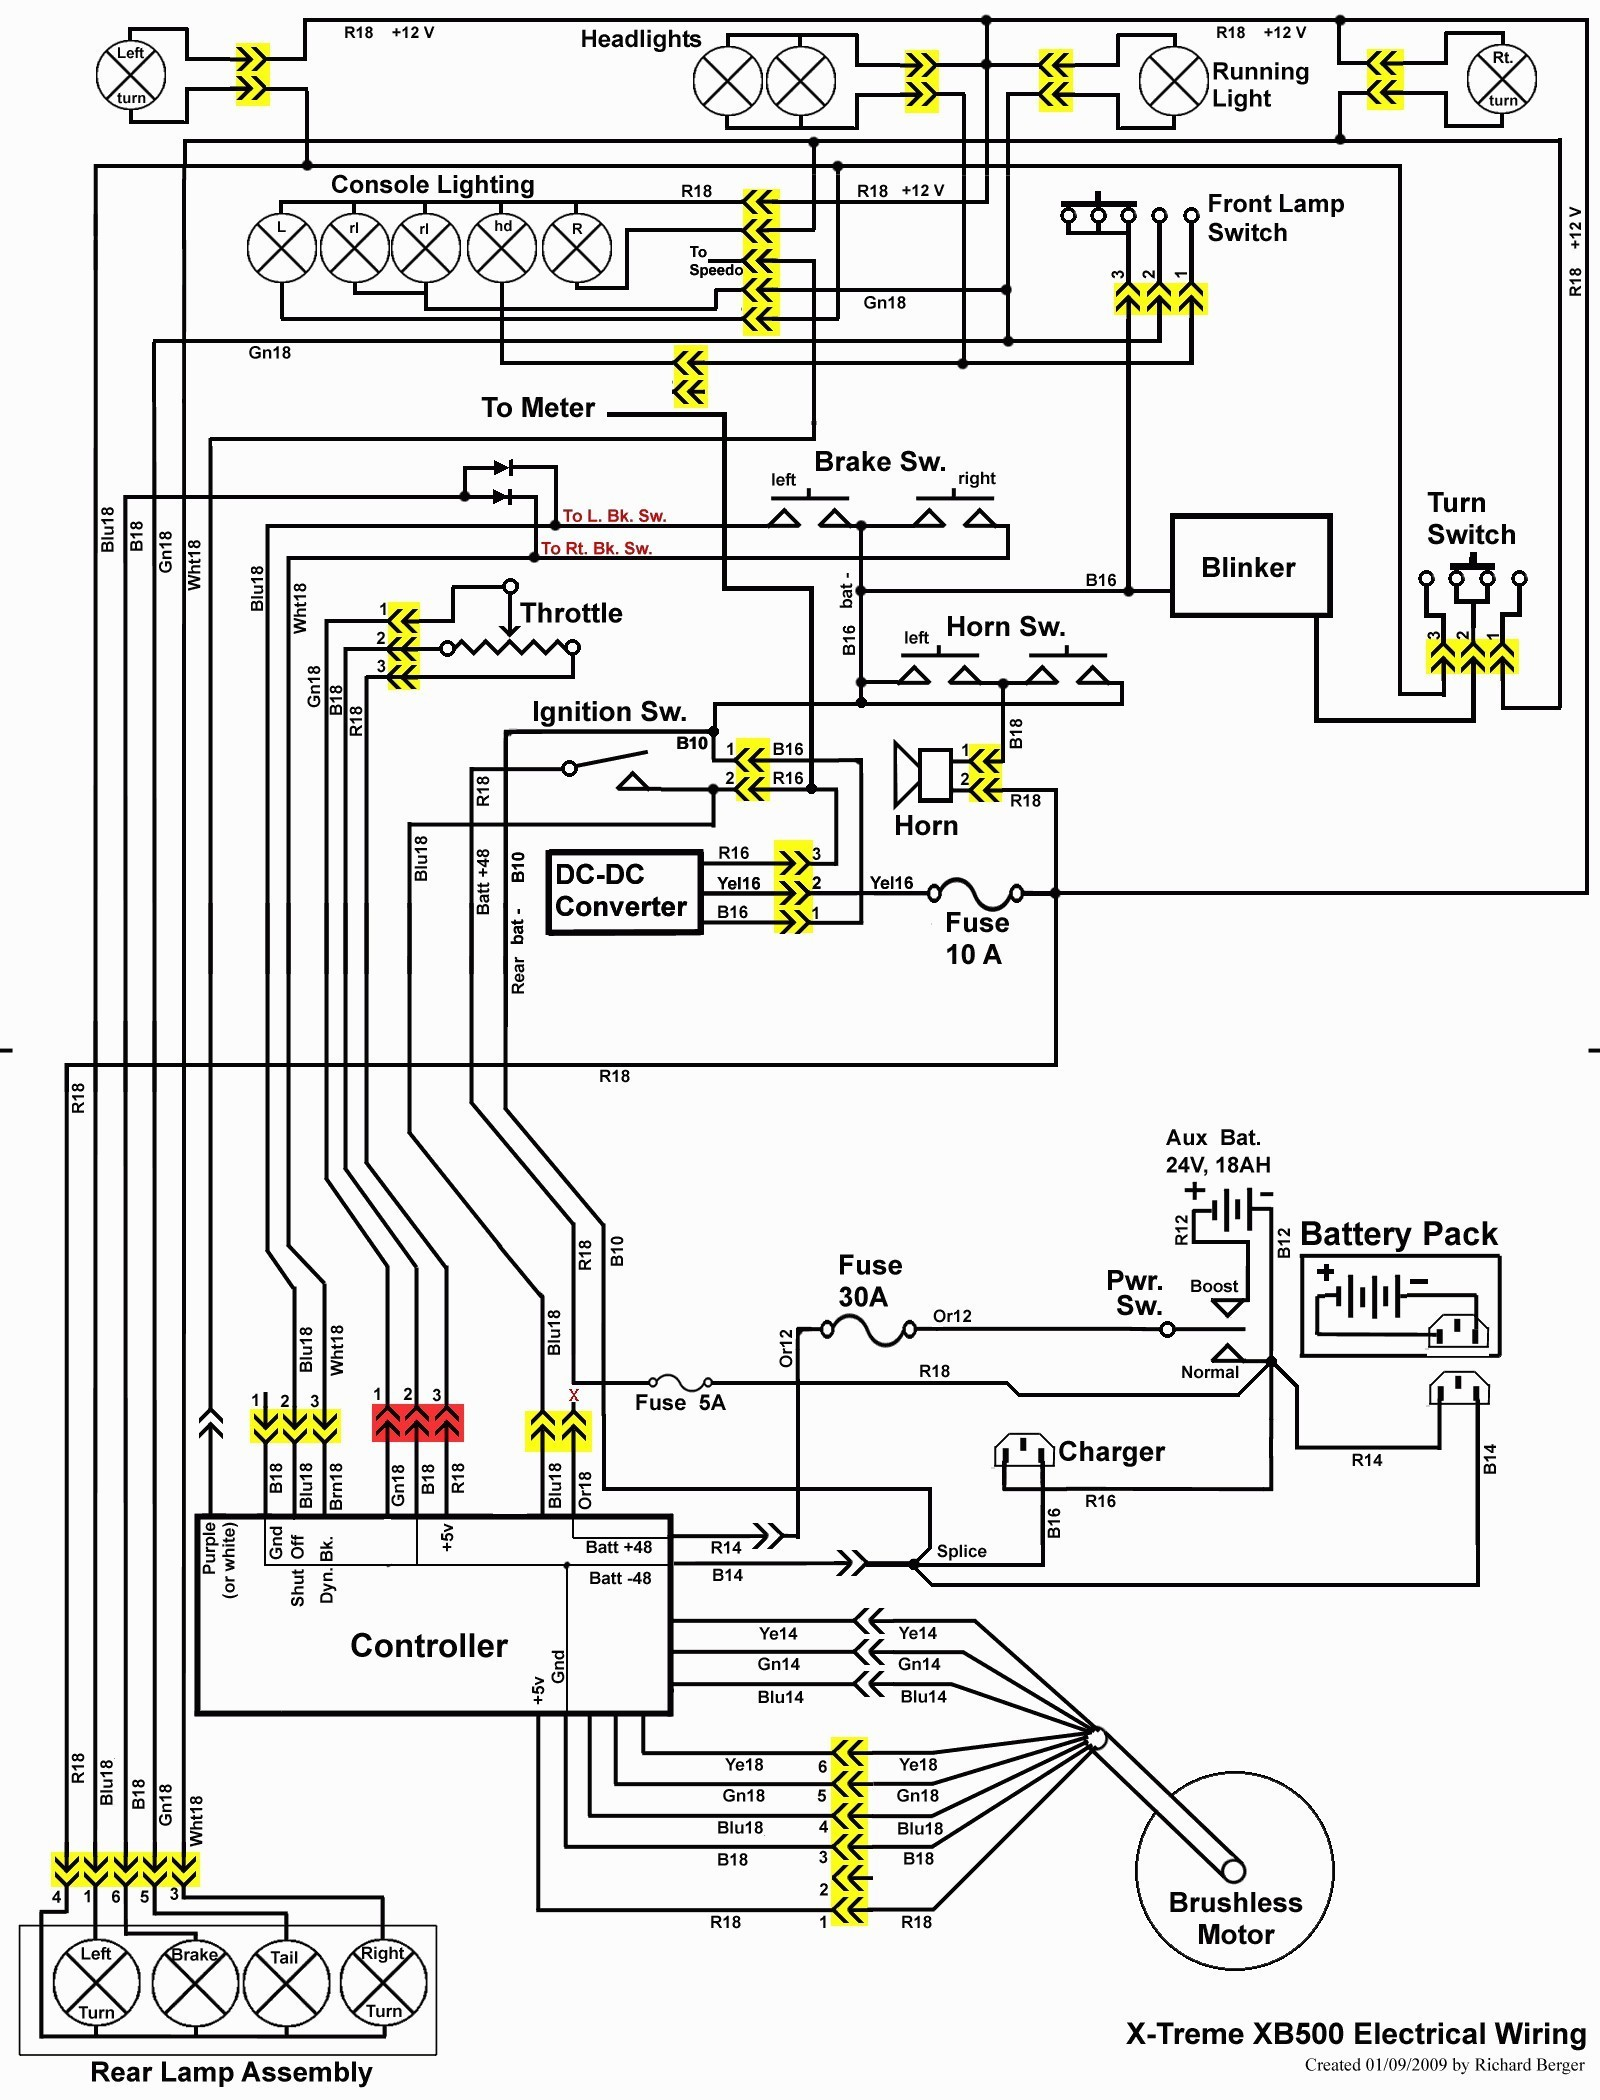 wiring diagram for razor e100 electric scooter